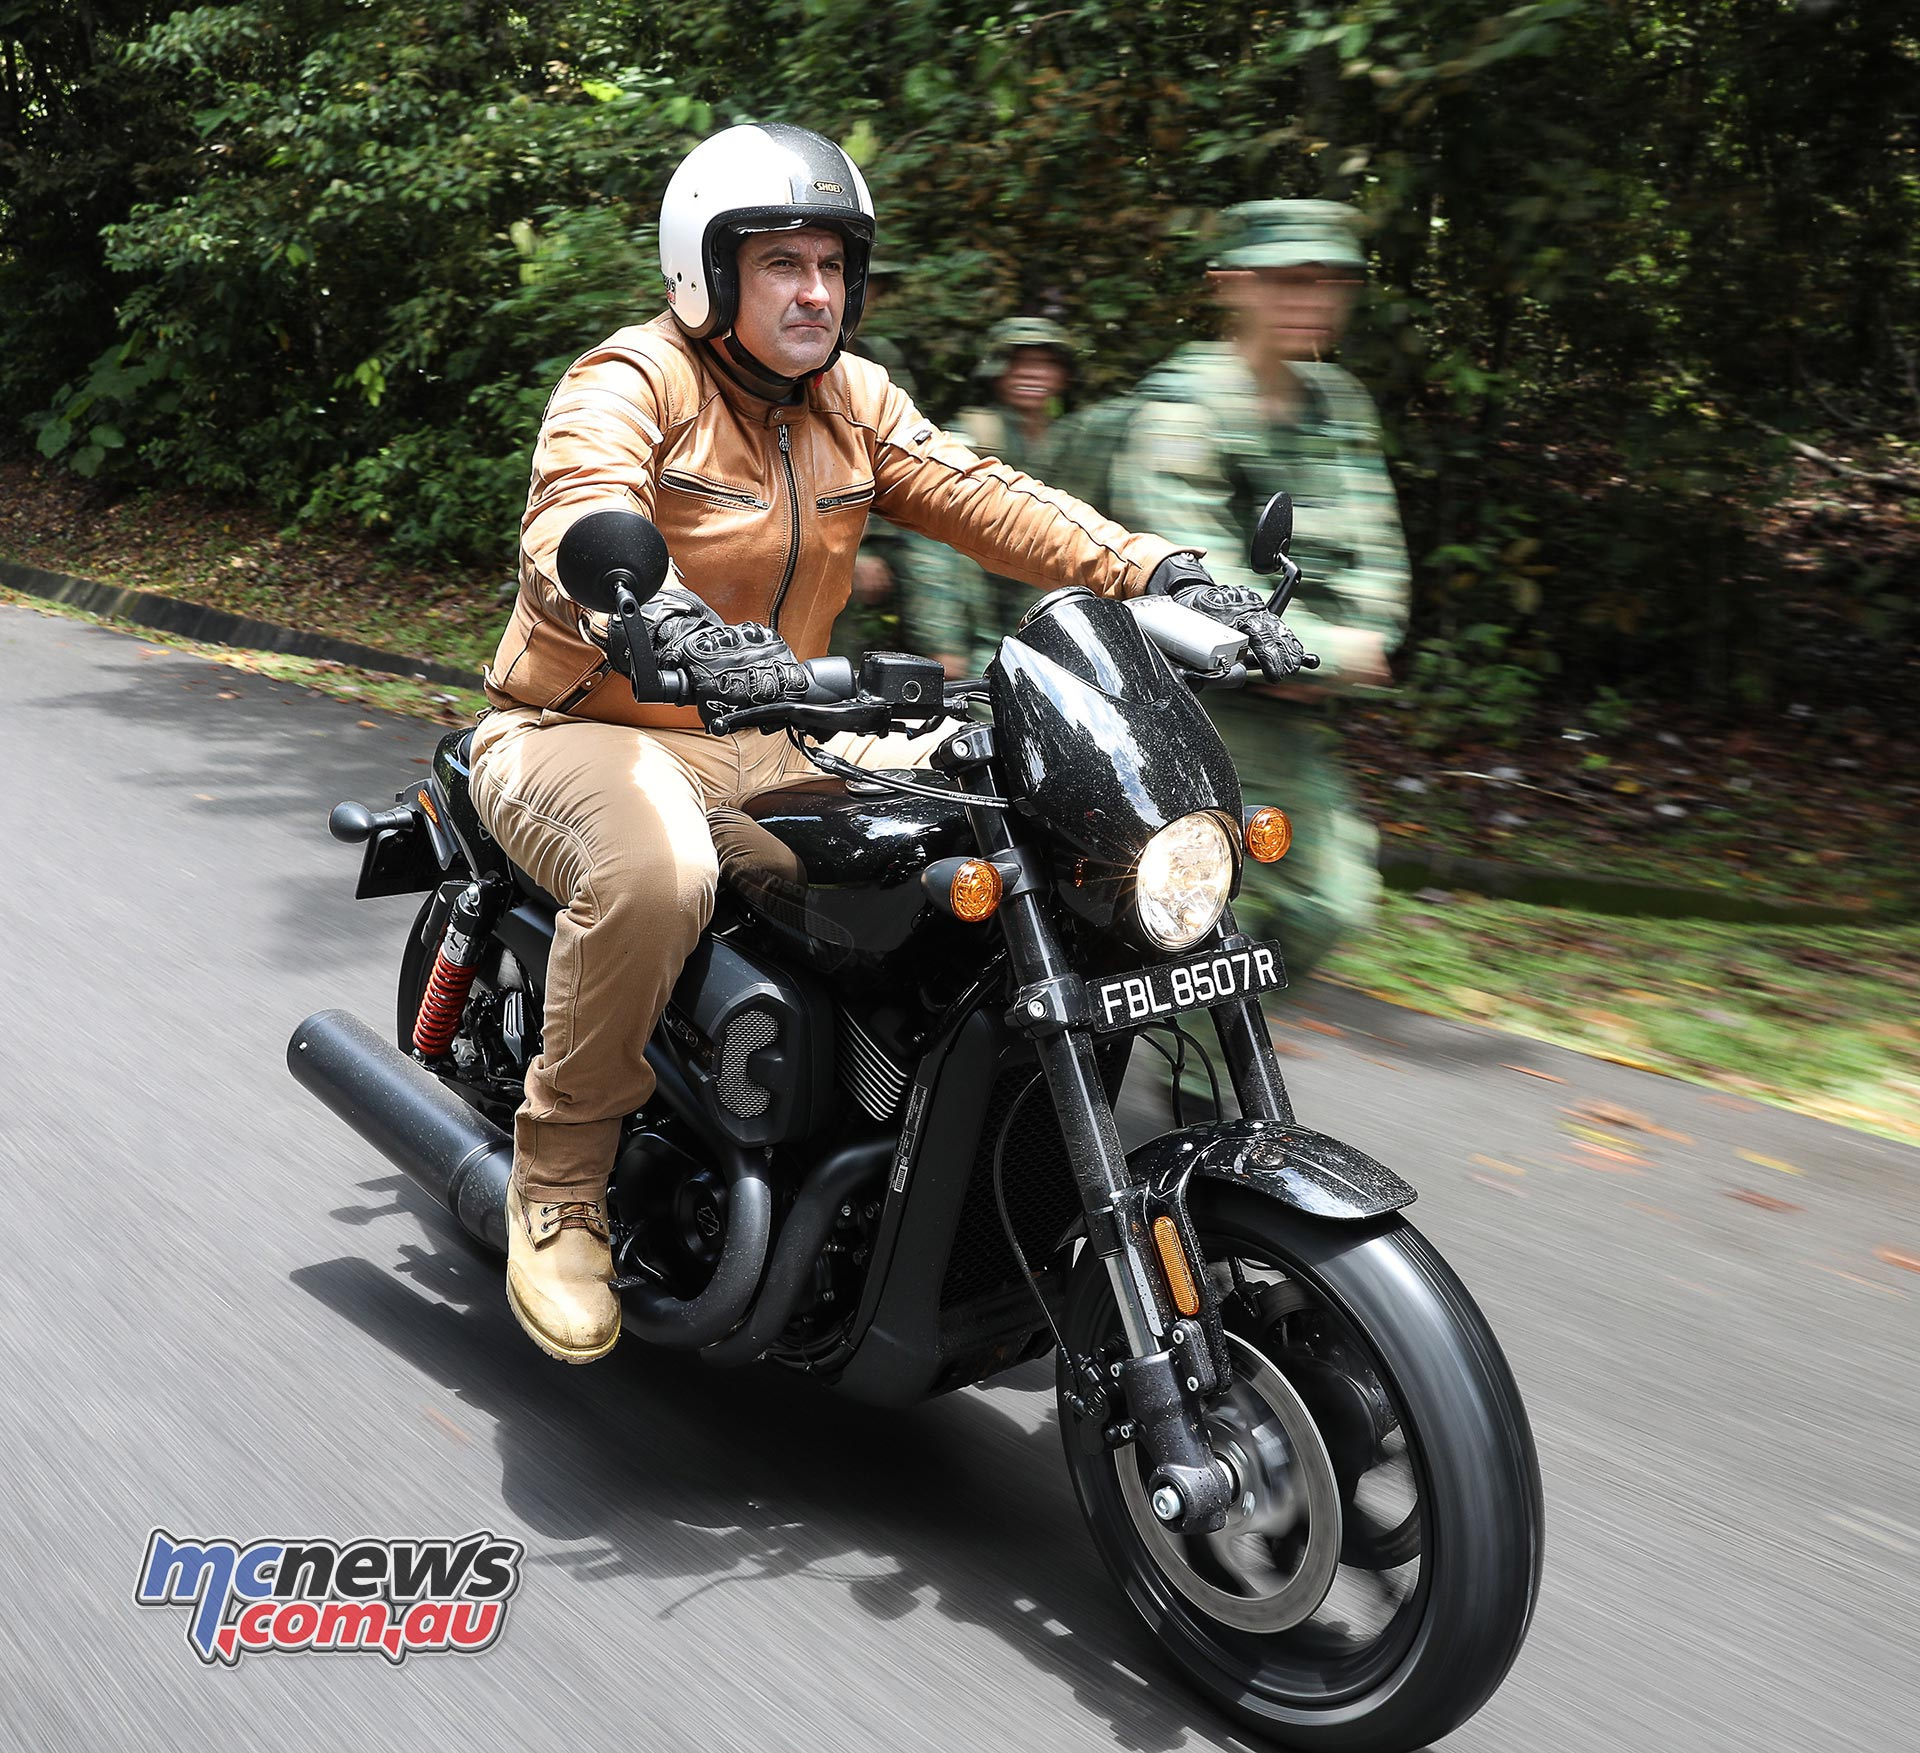 Fabulous Harley Street Rod 750 Tested Mcnews Com Au Pabps2019 Chair Design Images Pabps2019Com